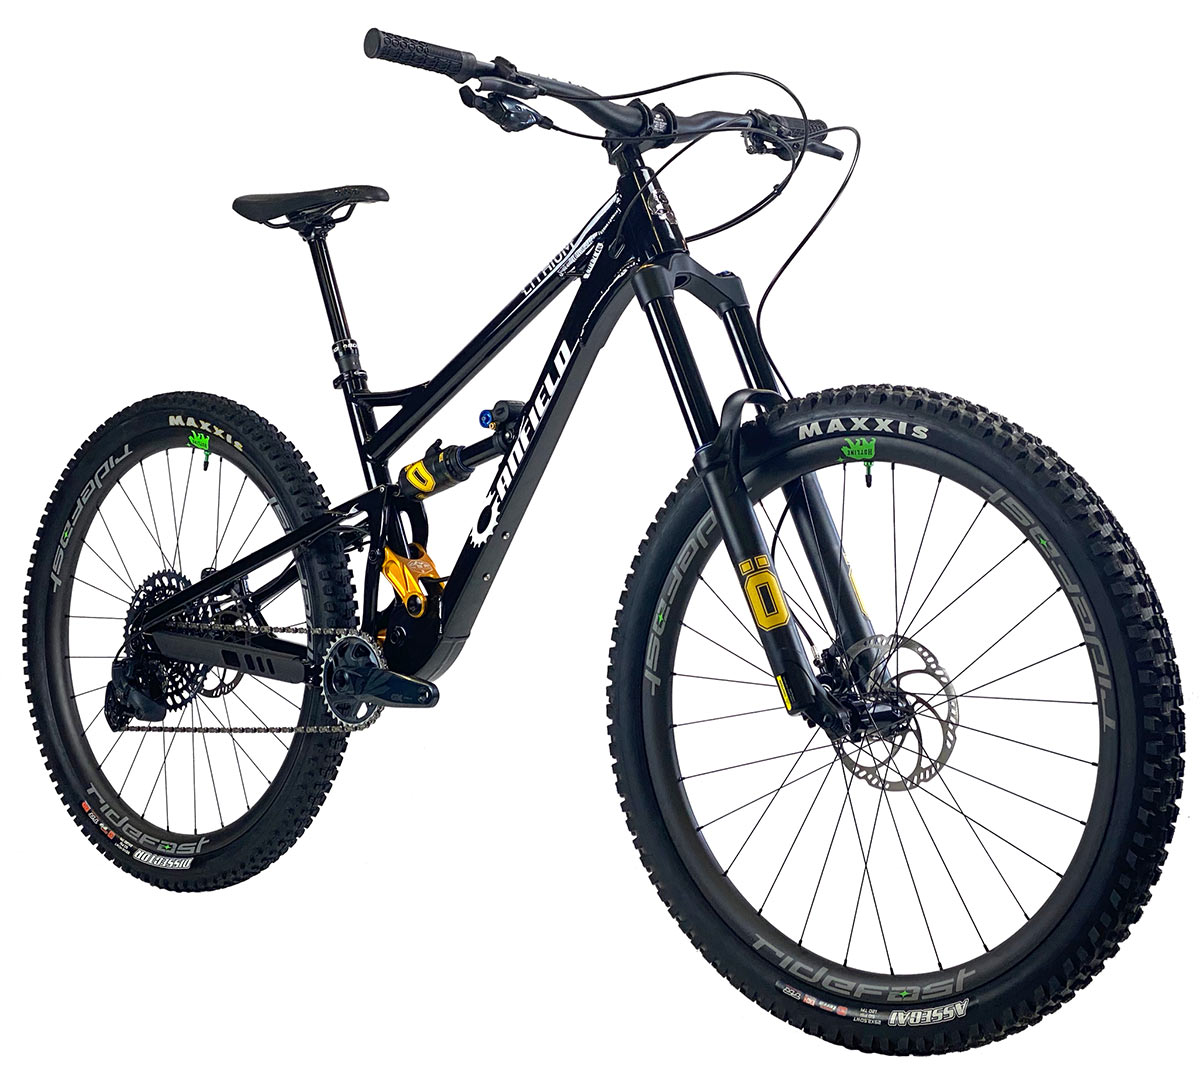 2021 canfield lithium full suspension mountain bike shown at an angle in black